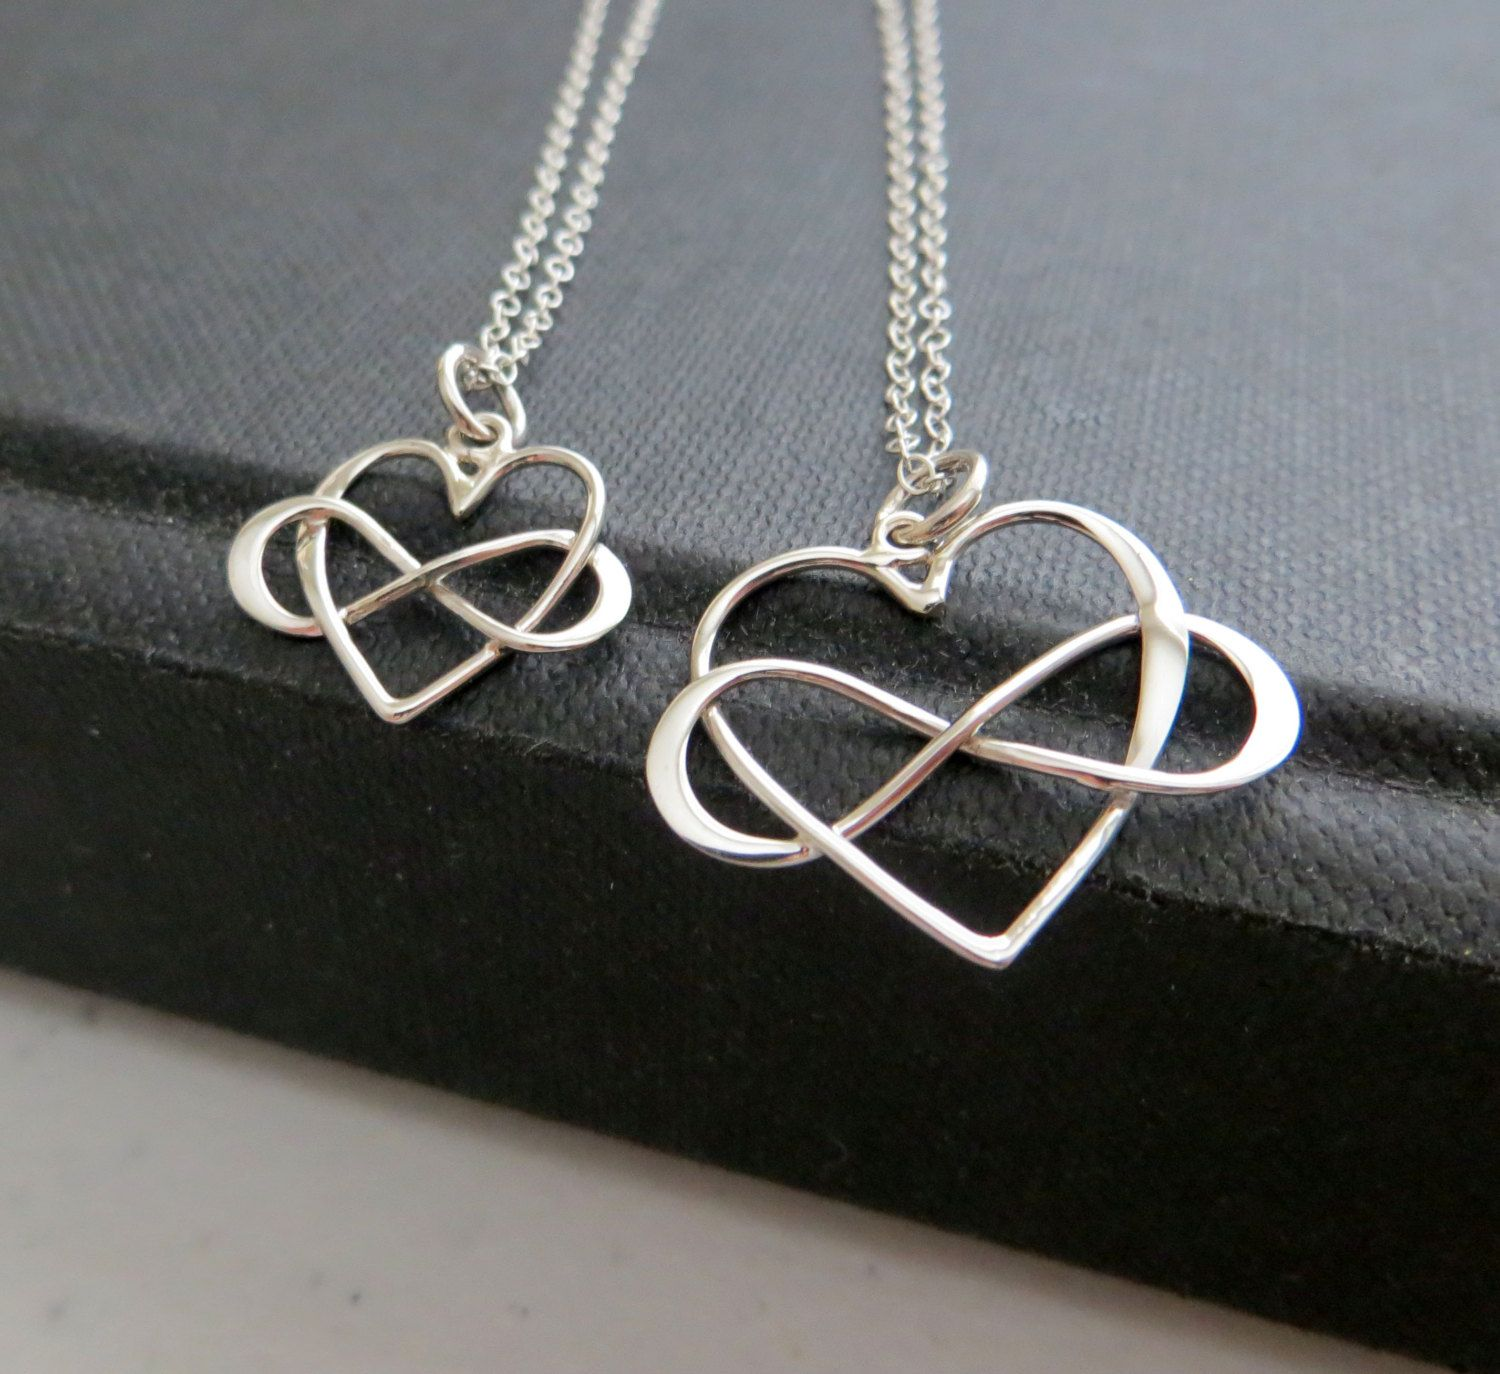 silver infinity necklace simply enticing size share noble studio of set jewelry large mor items comfortable ga mother daughter infinitynecklace heart